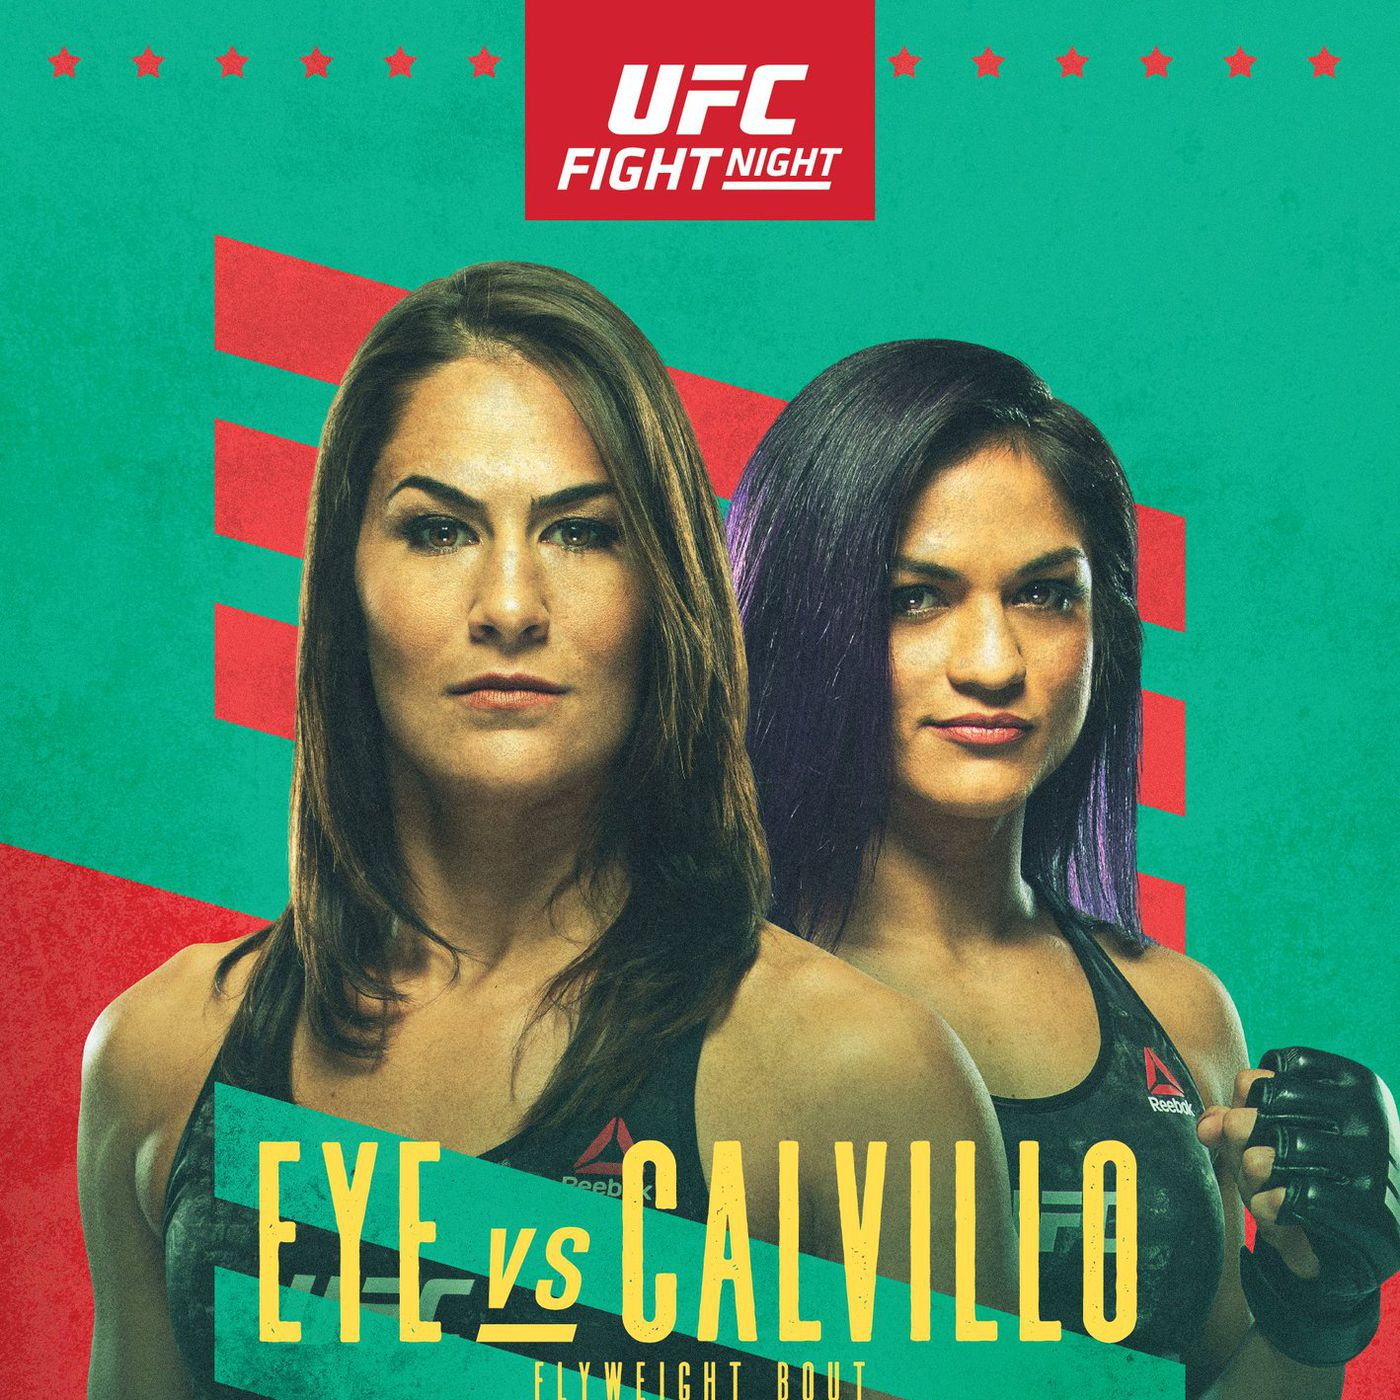 UFC Fight Night: Eye vs Calvillo: Odds, Previews & Picks for Every Fight